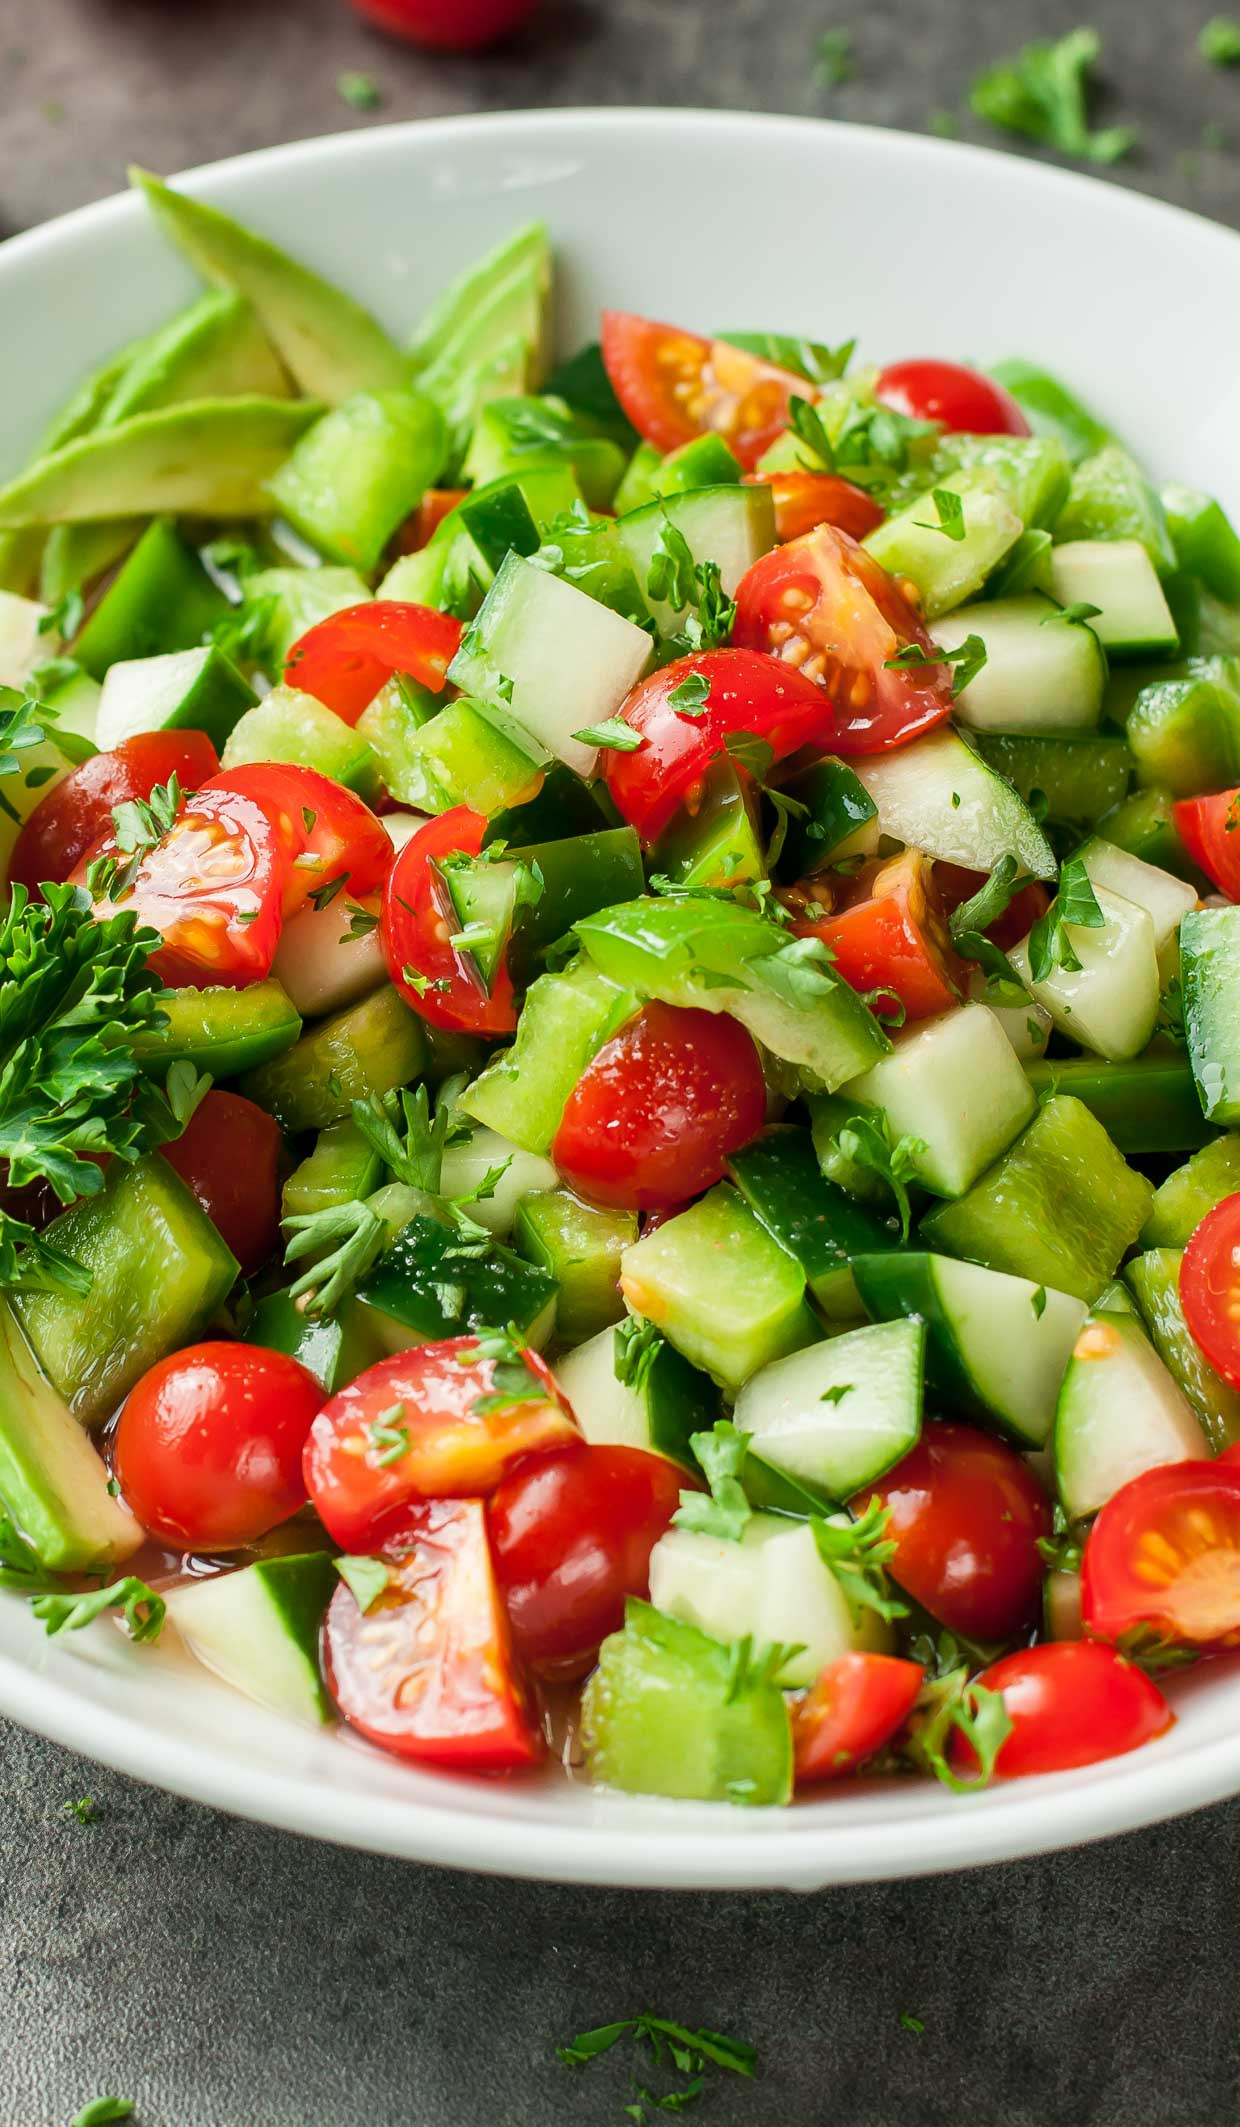 Salads Recipes Healthy  12 Tasty Recipes to Step Up Your Salad Game Peas And Crayons